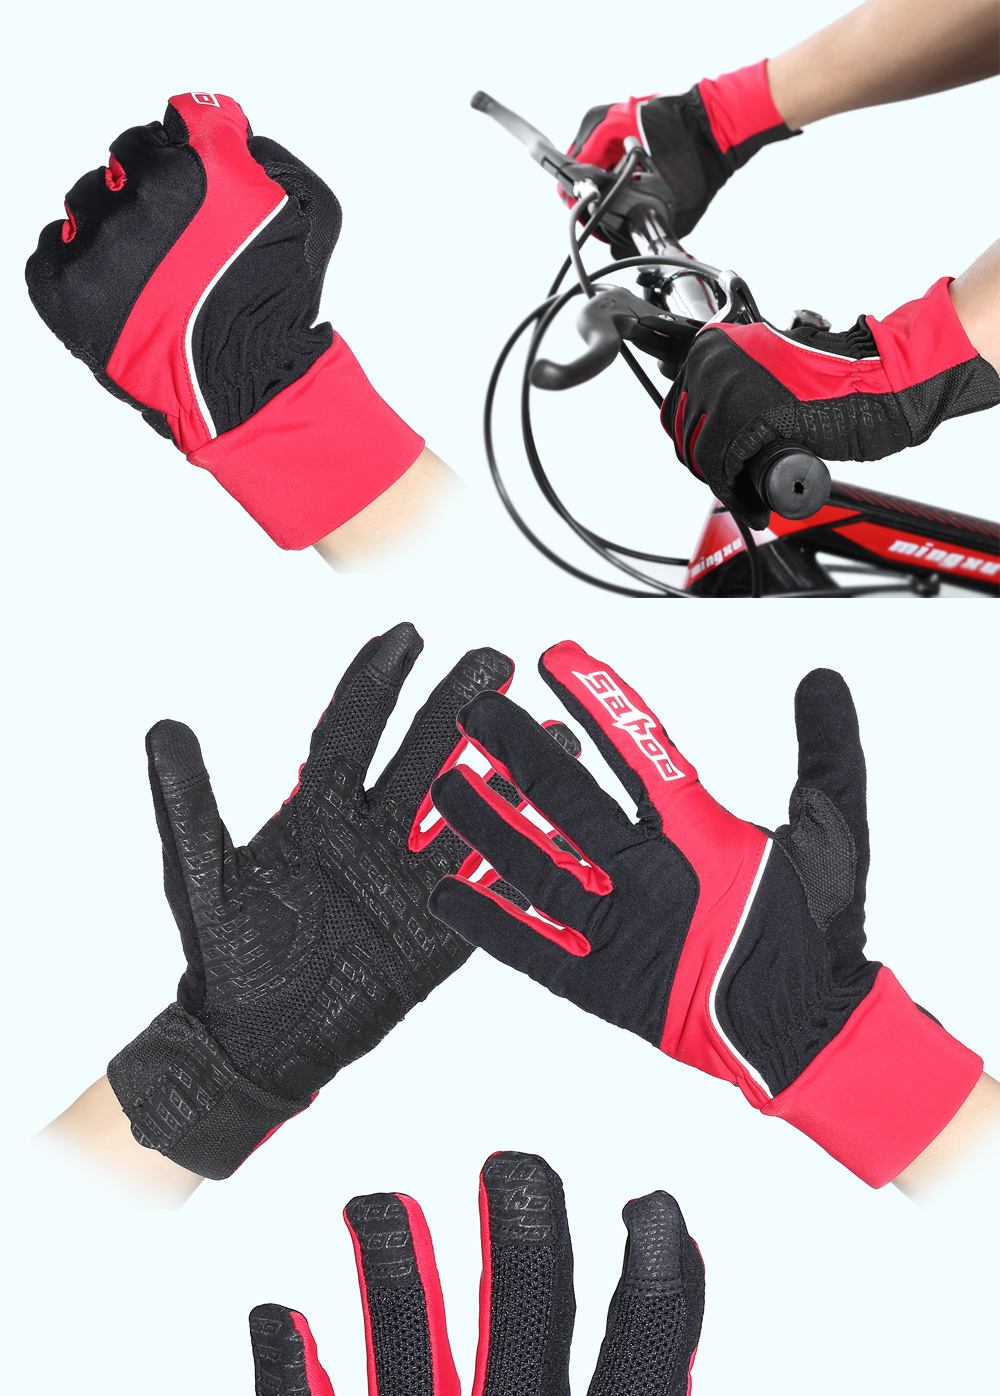 SAHOO 42890 Pair of Touchscreen Full-finger Cycling Gloves for Autumn Winter